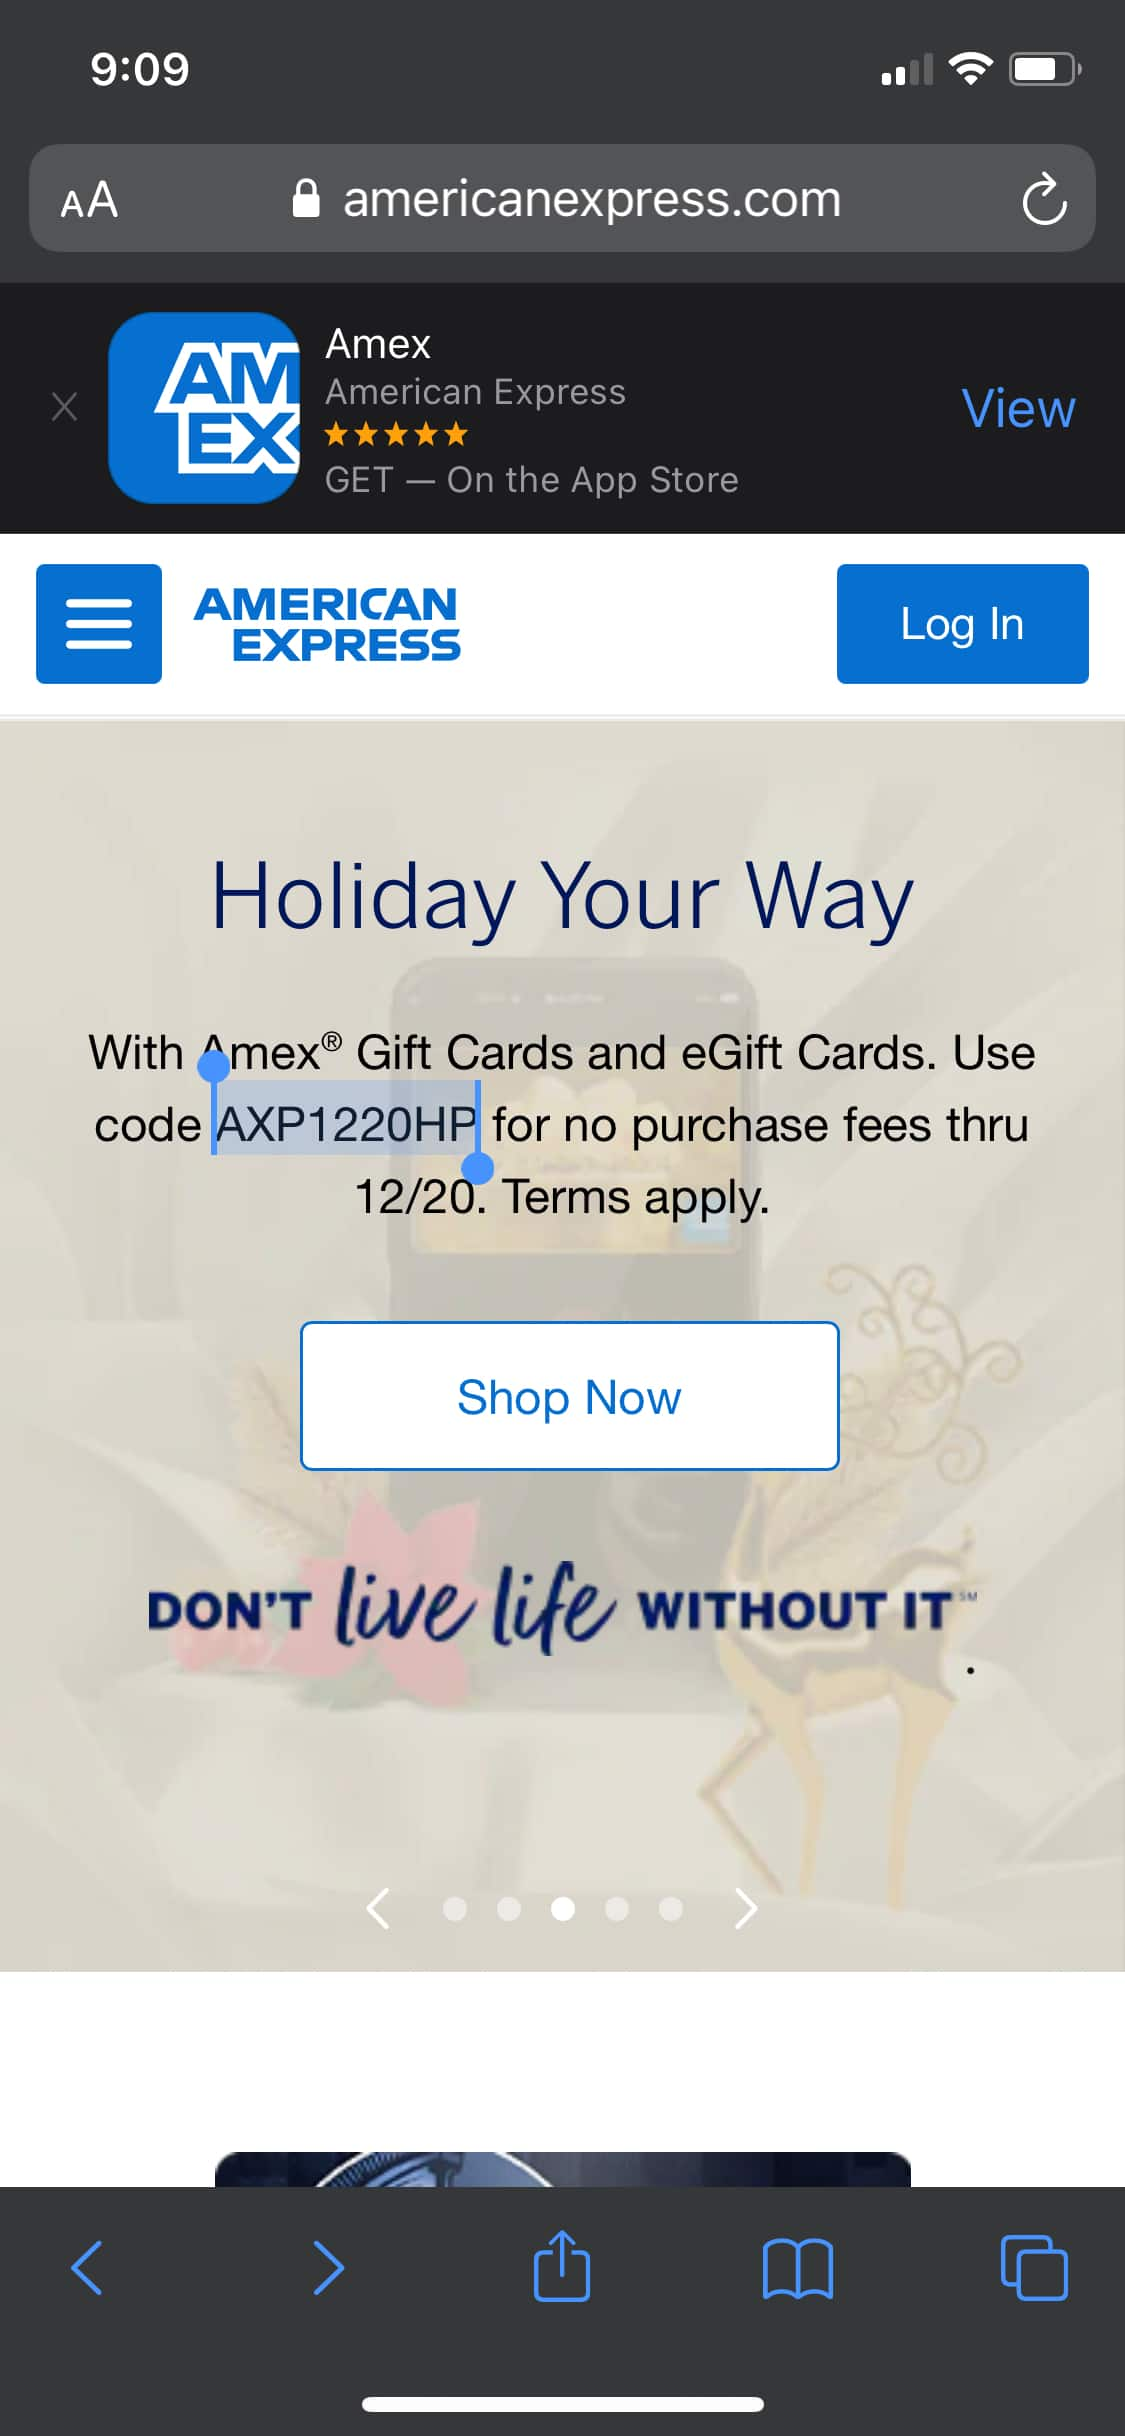 No fee AMEX gift card with code